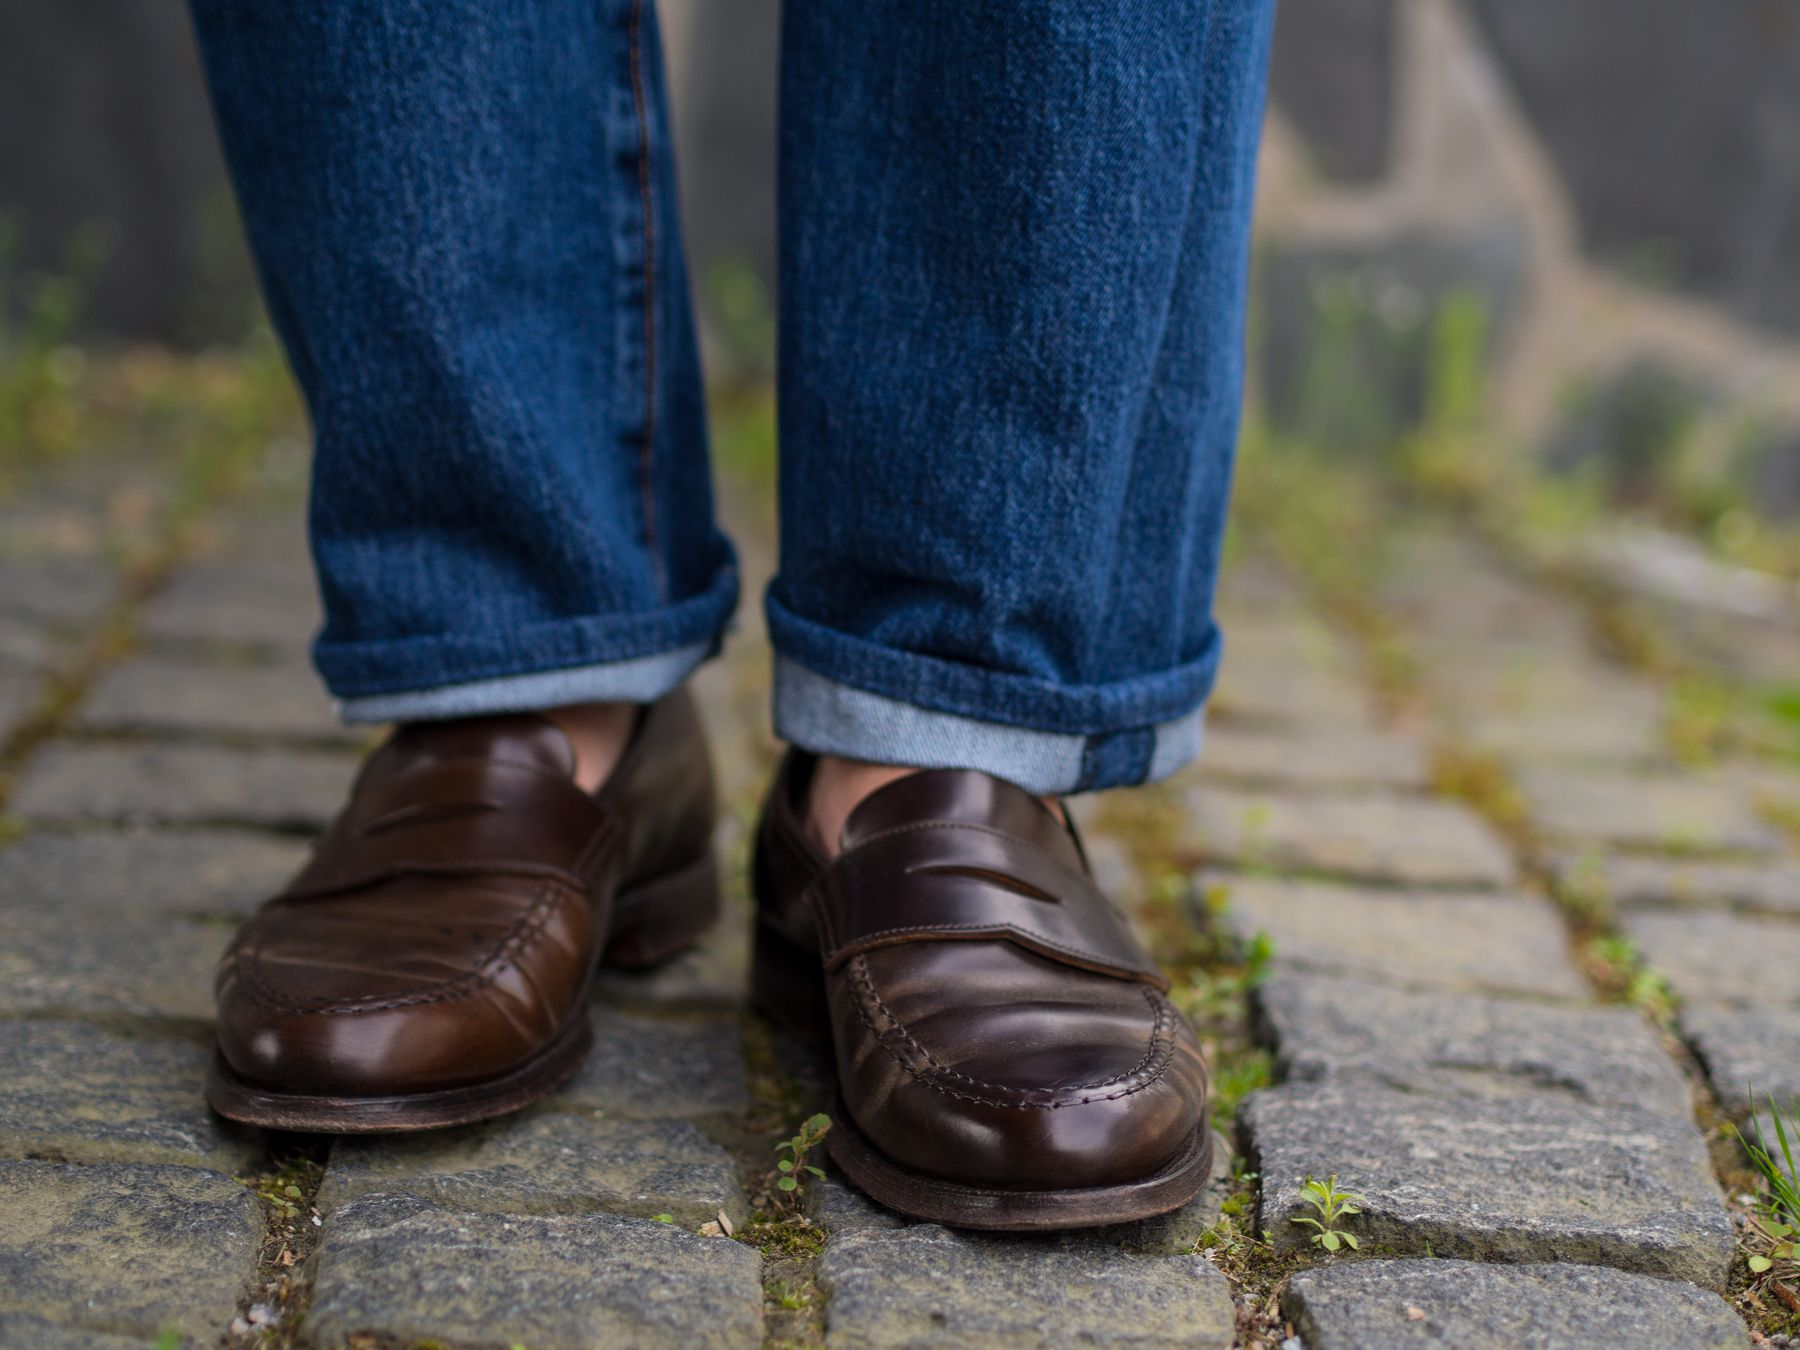 Change You Can Wear >> Levis 501s in a Casual Sartorial Outfit